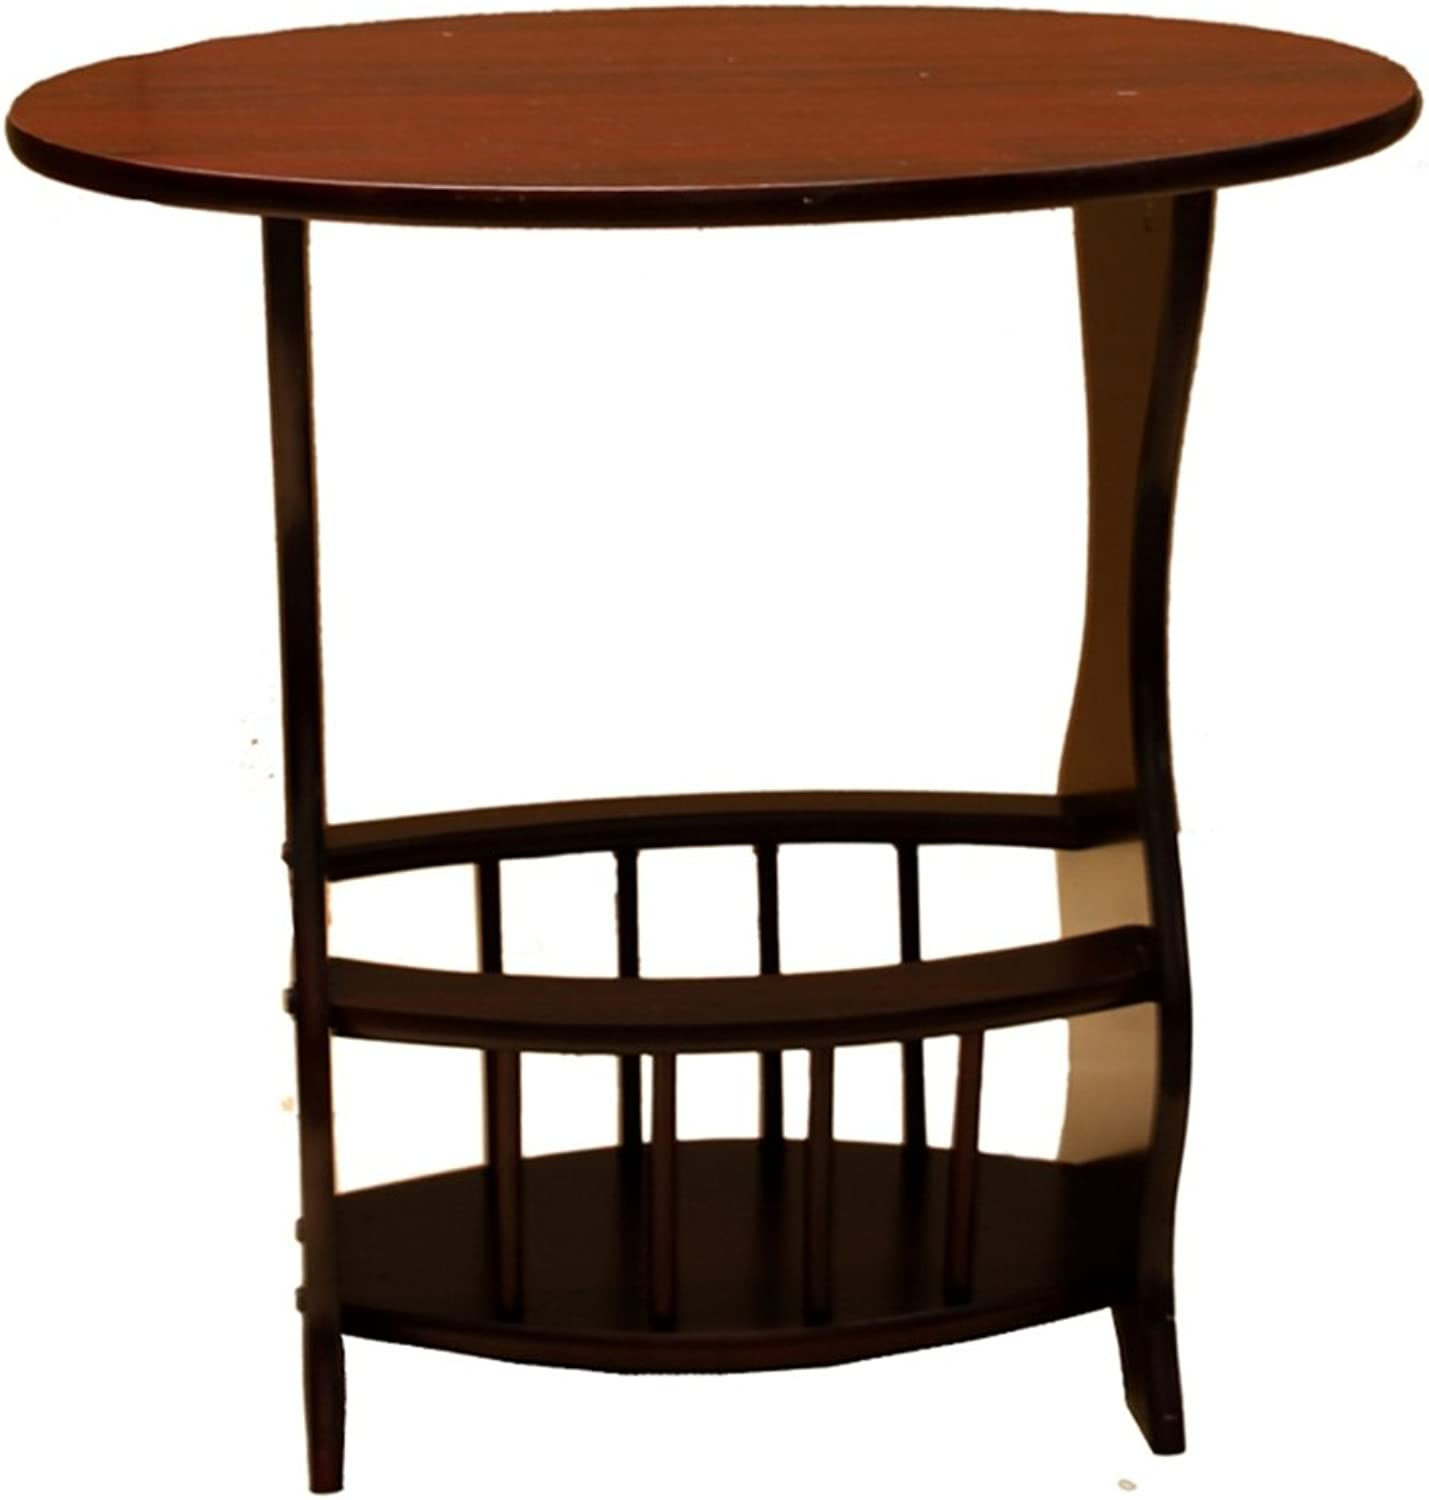 Oval Accent Table w Magazine Holder Base in Cherry Finish